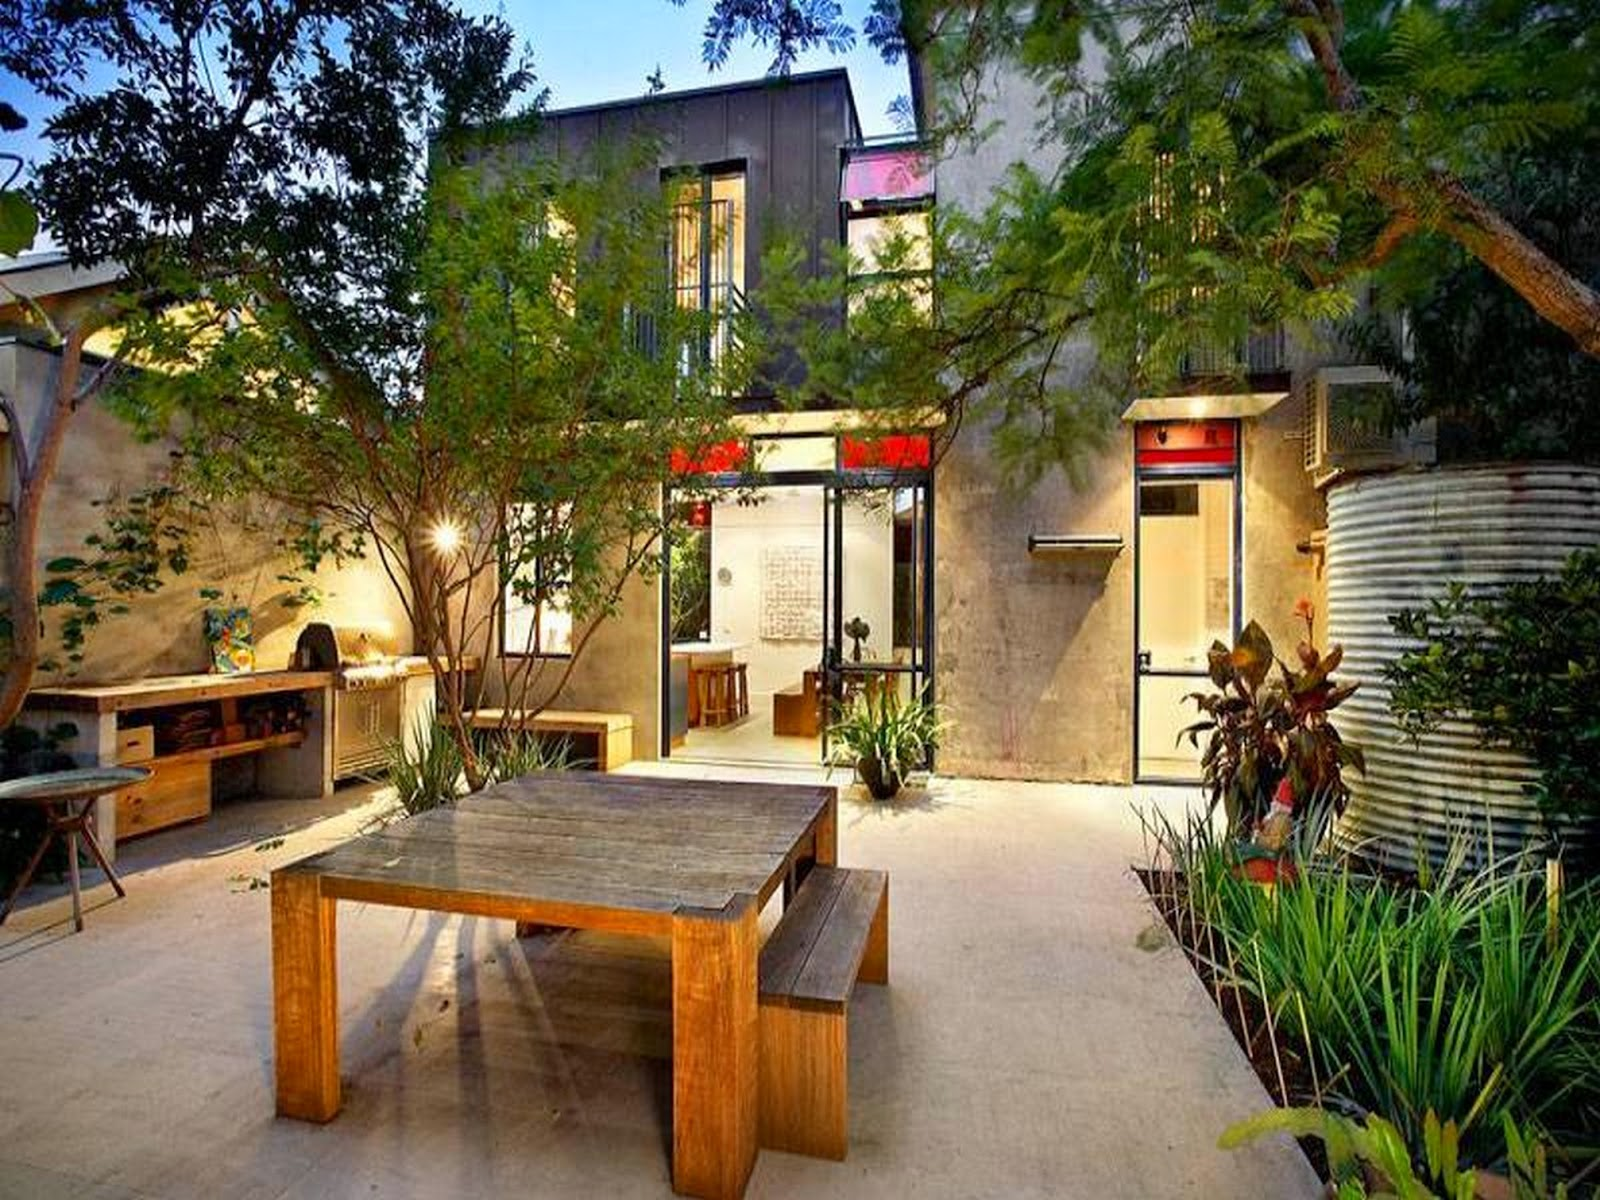 53 gambar teras belakang rumah minimalis sederhana - Critical elements for a backyard landscaping ...